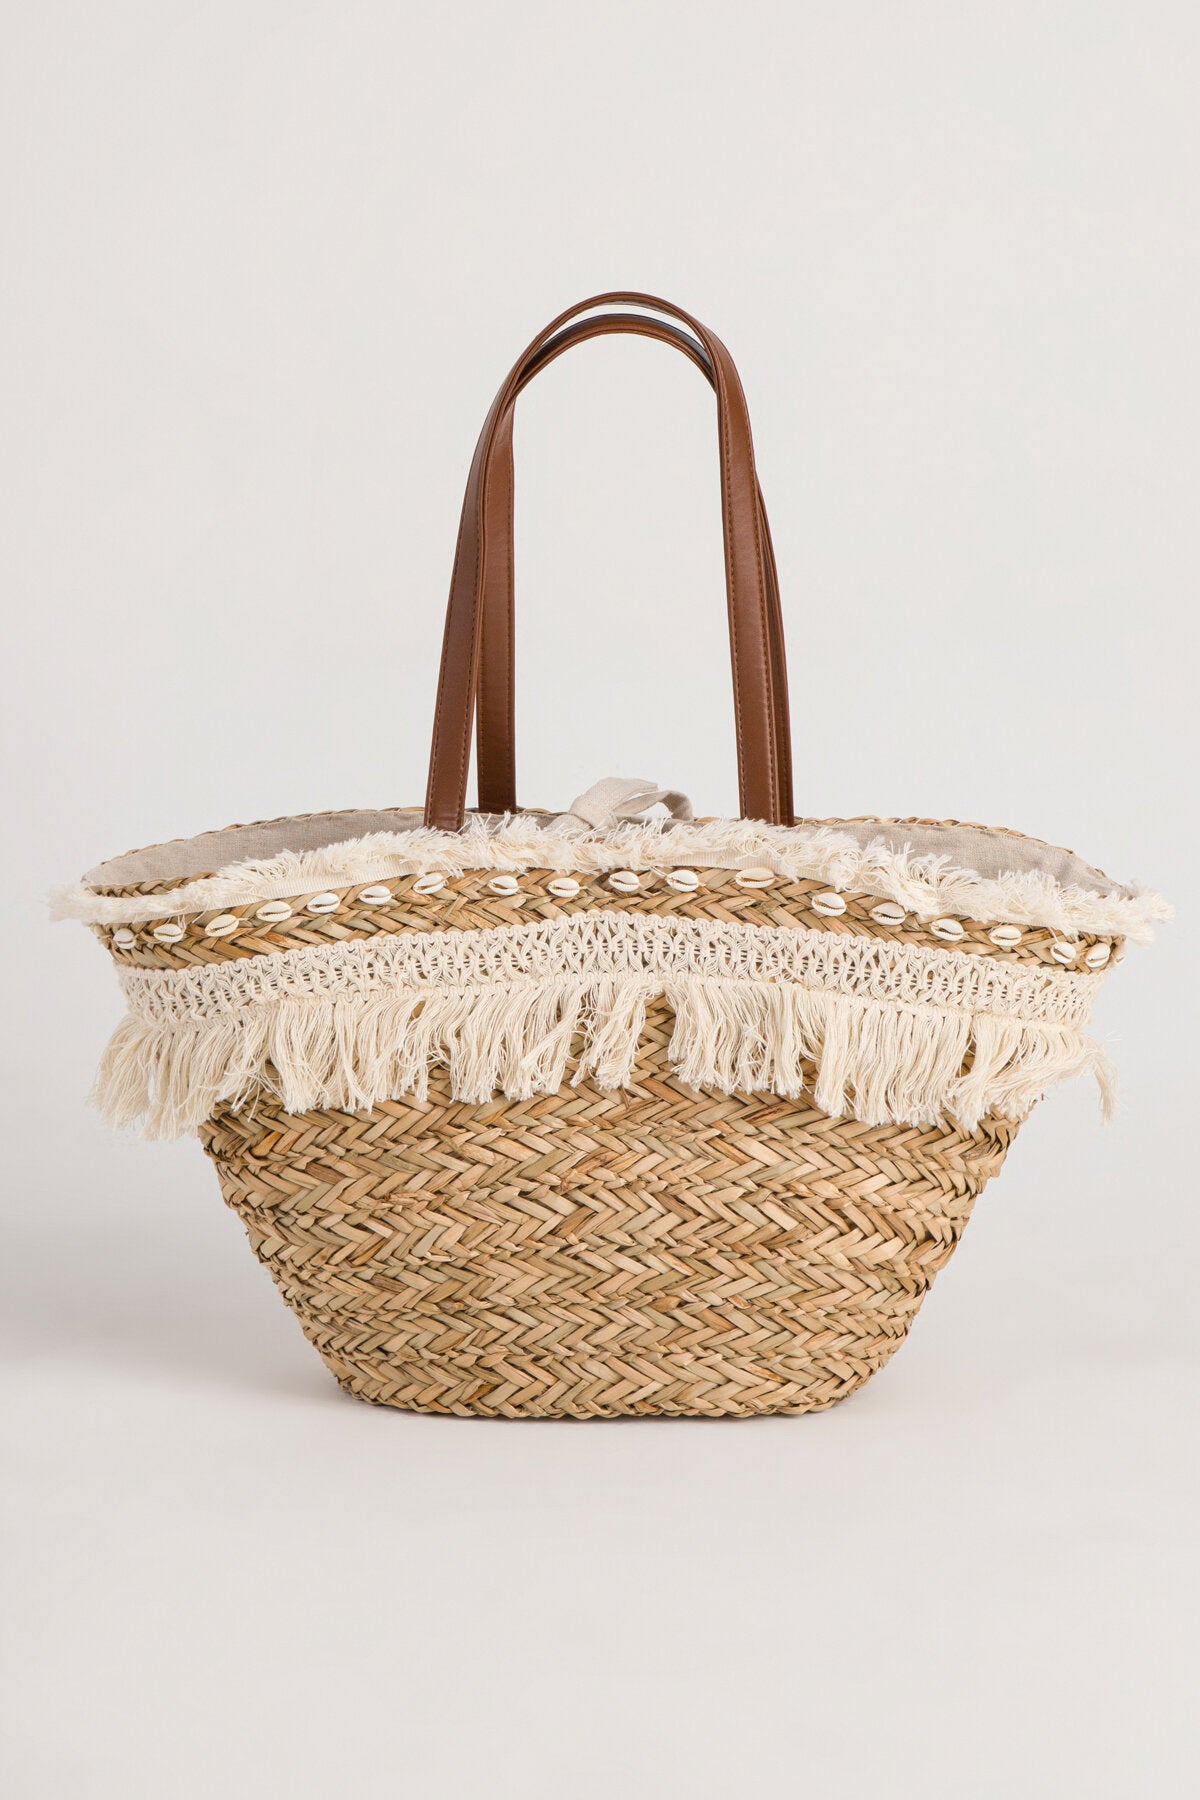 SHELL STRAW BEACH TOTE